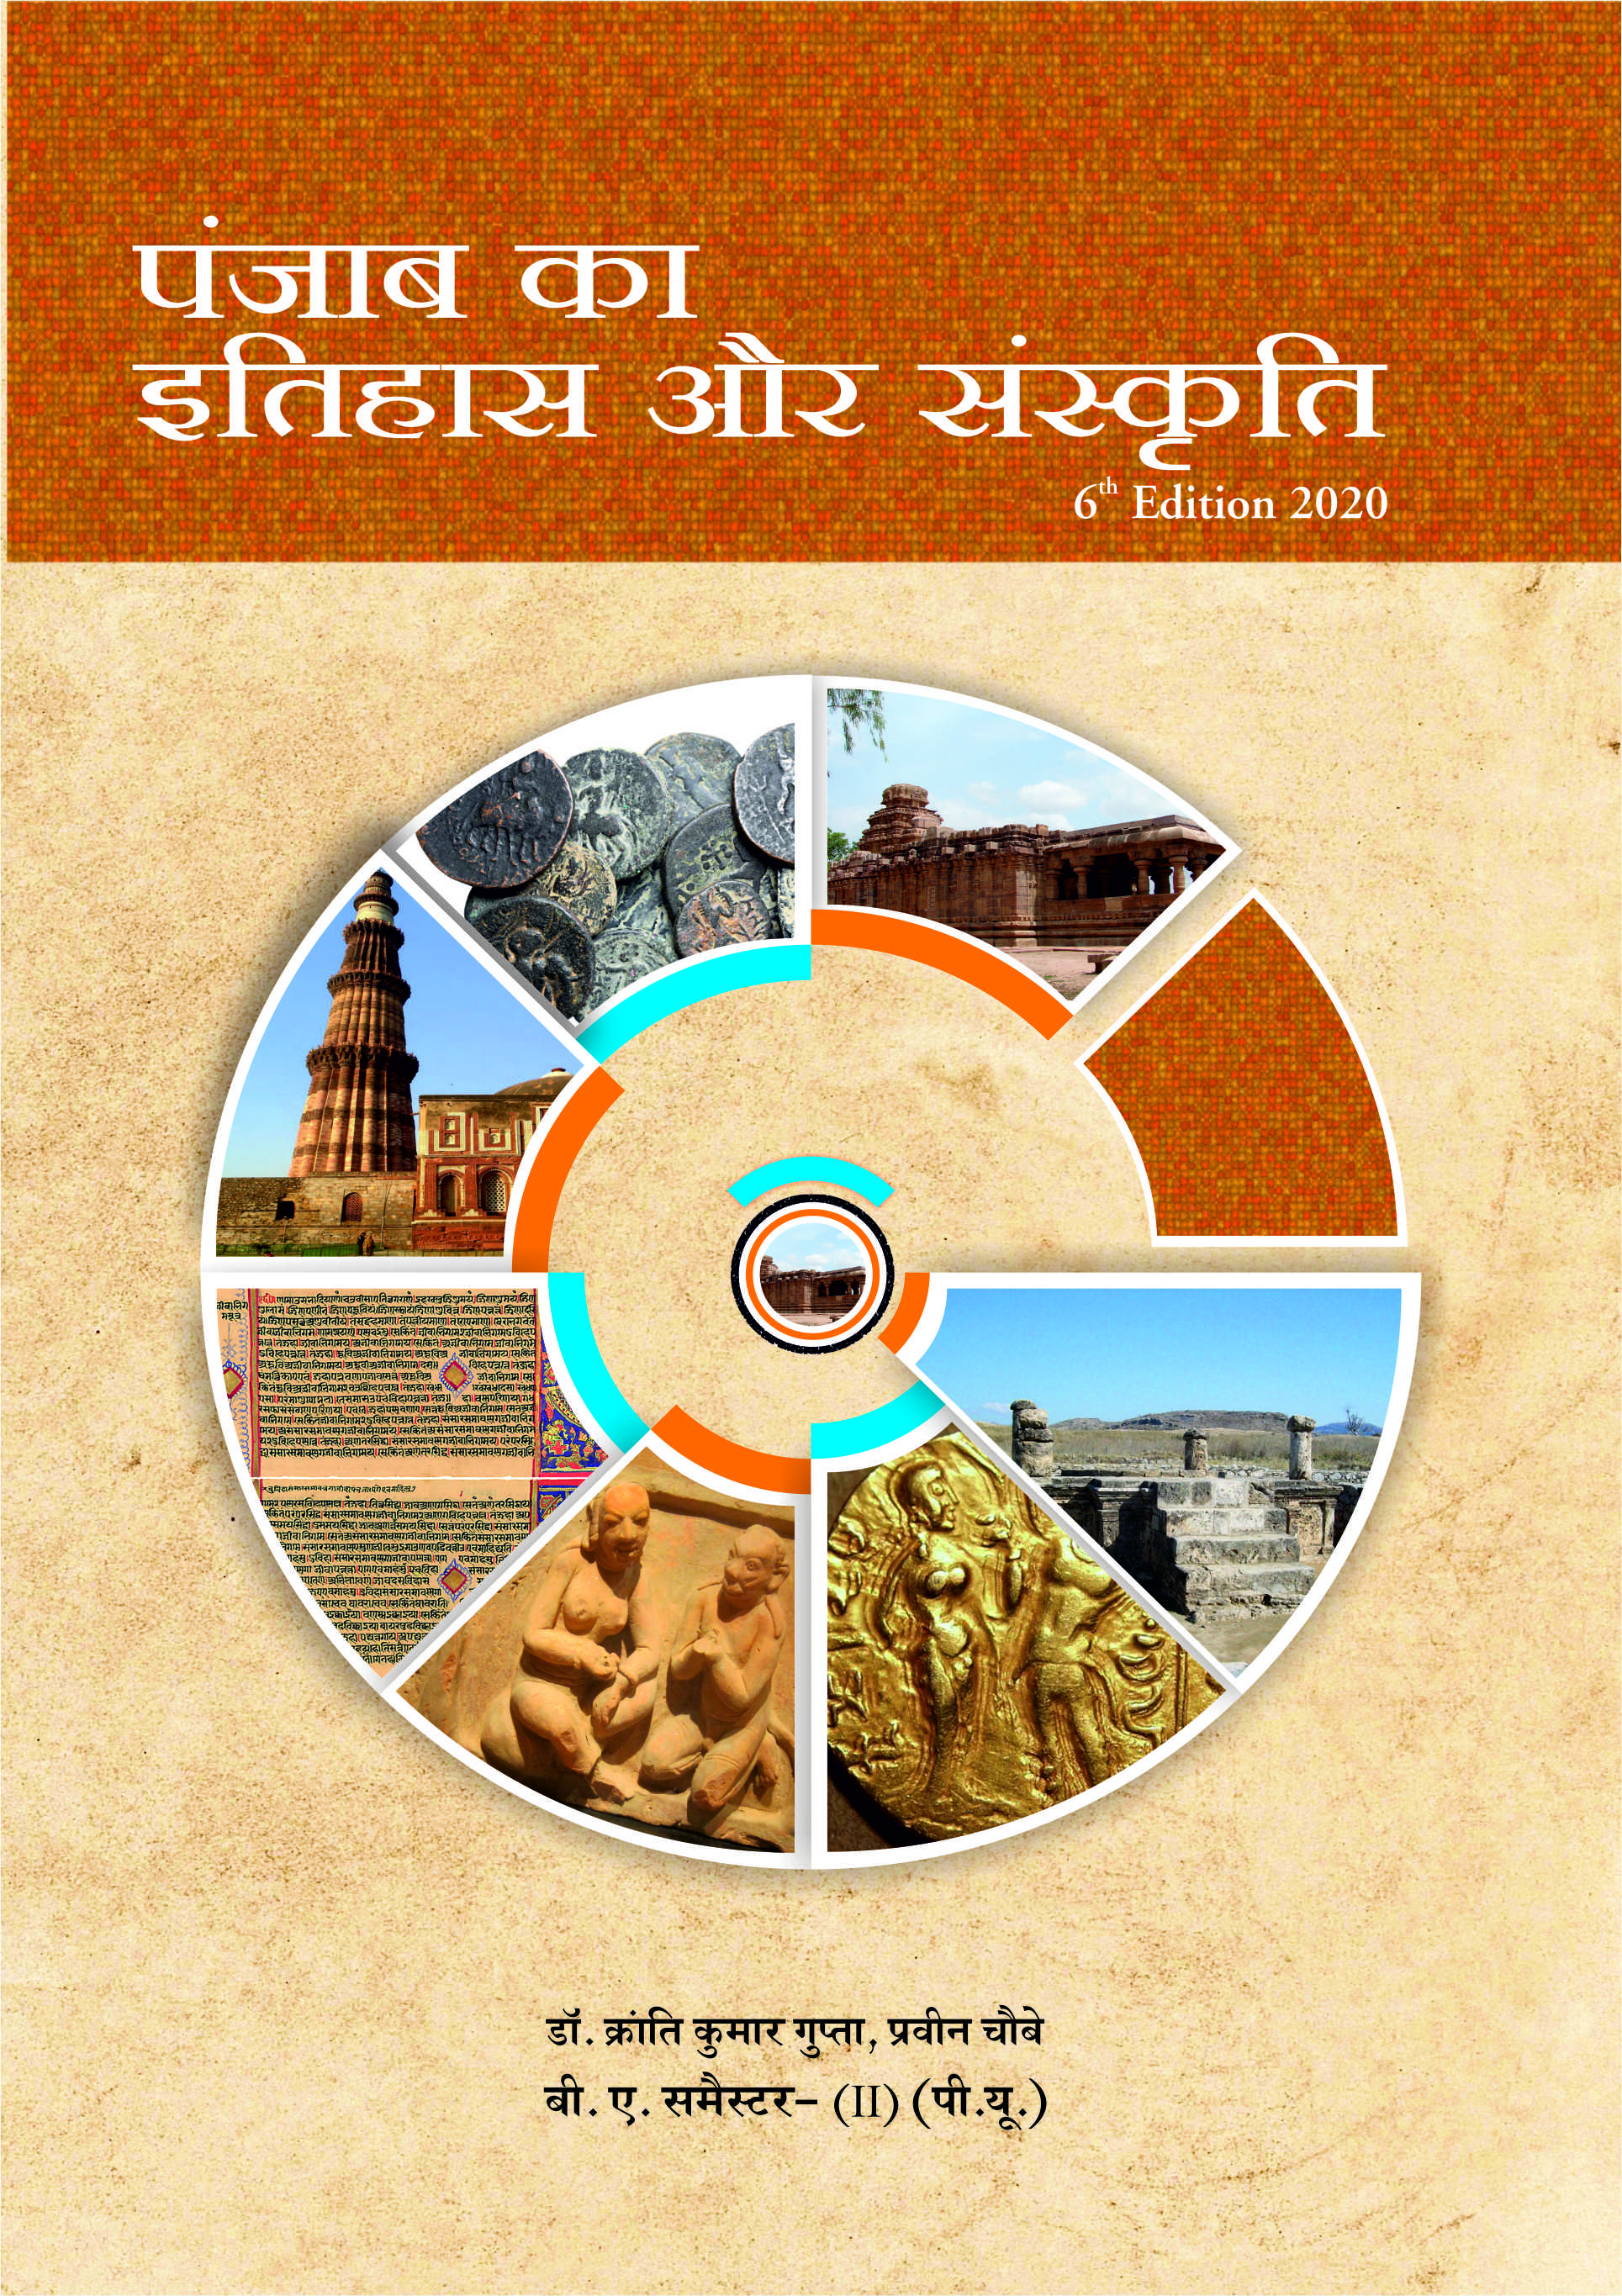 MPH History and Culture of Punjab for B.A. Sem-II (Hindi ) by Parveen Chaubey and KK. Gupta (Mohindra Publishing House) 6th Edition 2020 for Panjab University